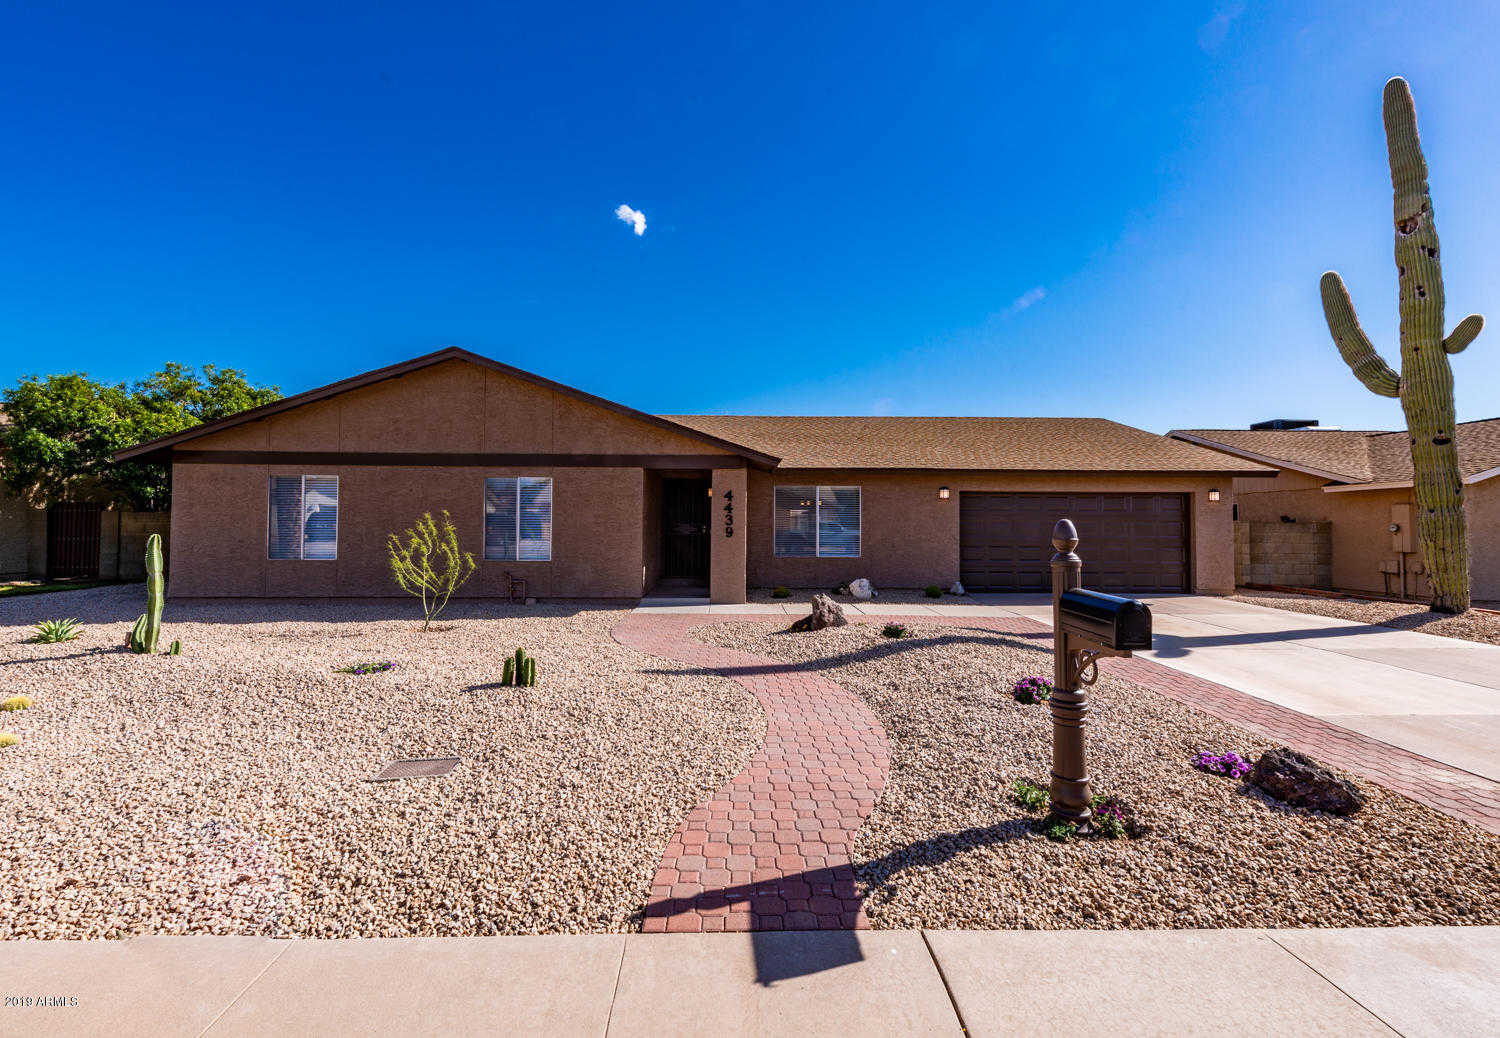 $310,000 - 4Br/2Ba - Home for Sale in Horizons West Lot 1-100, Glendale